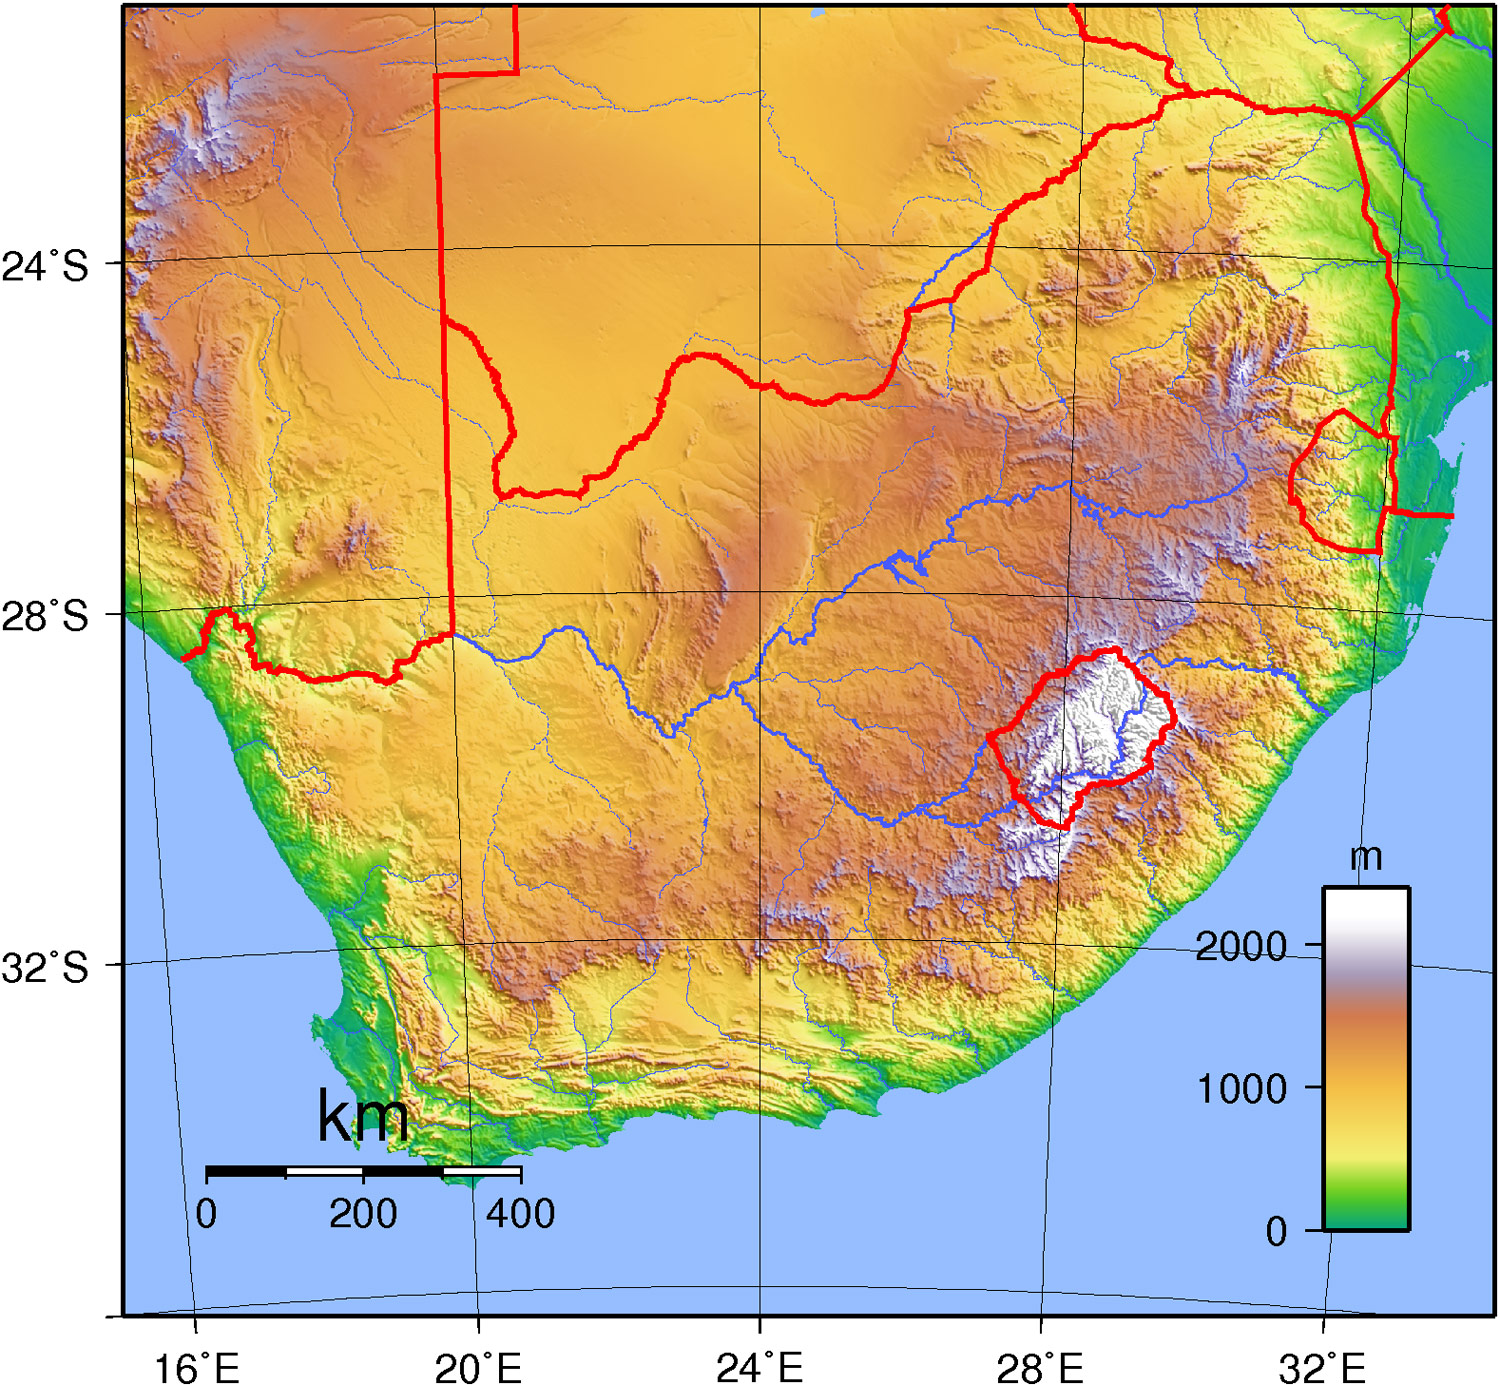 South Africa Topography